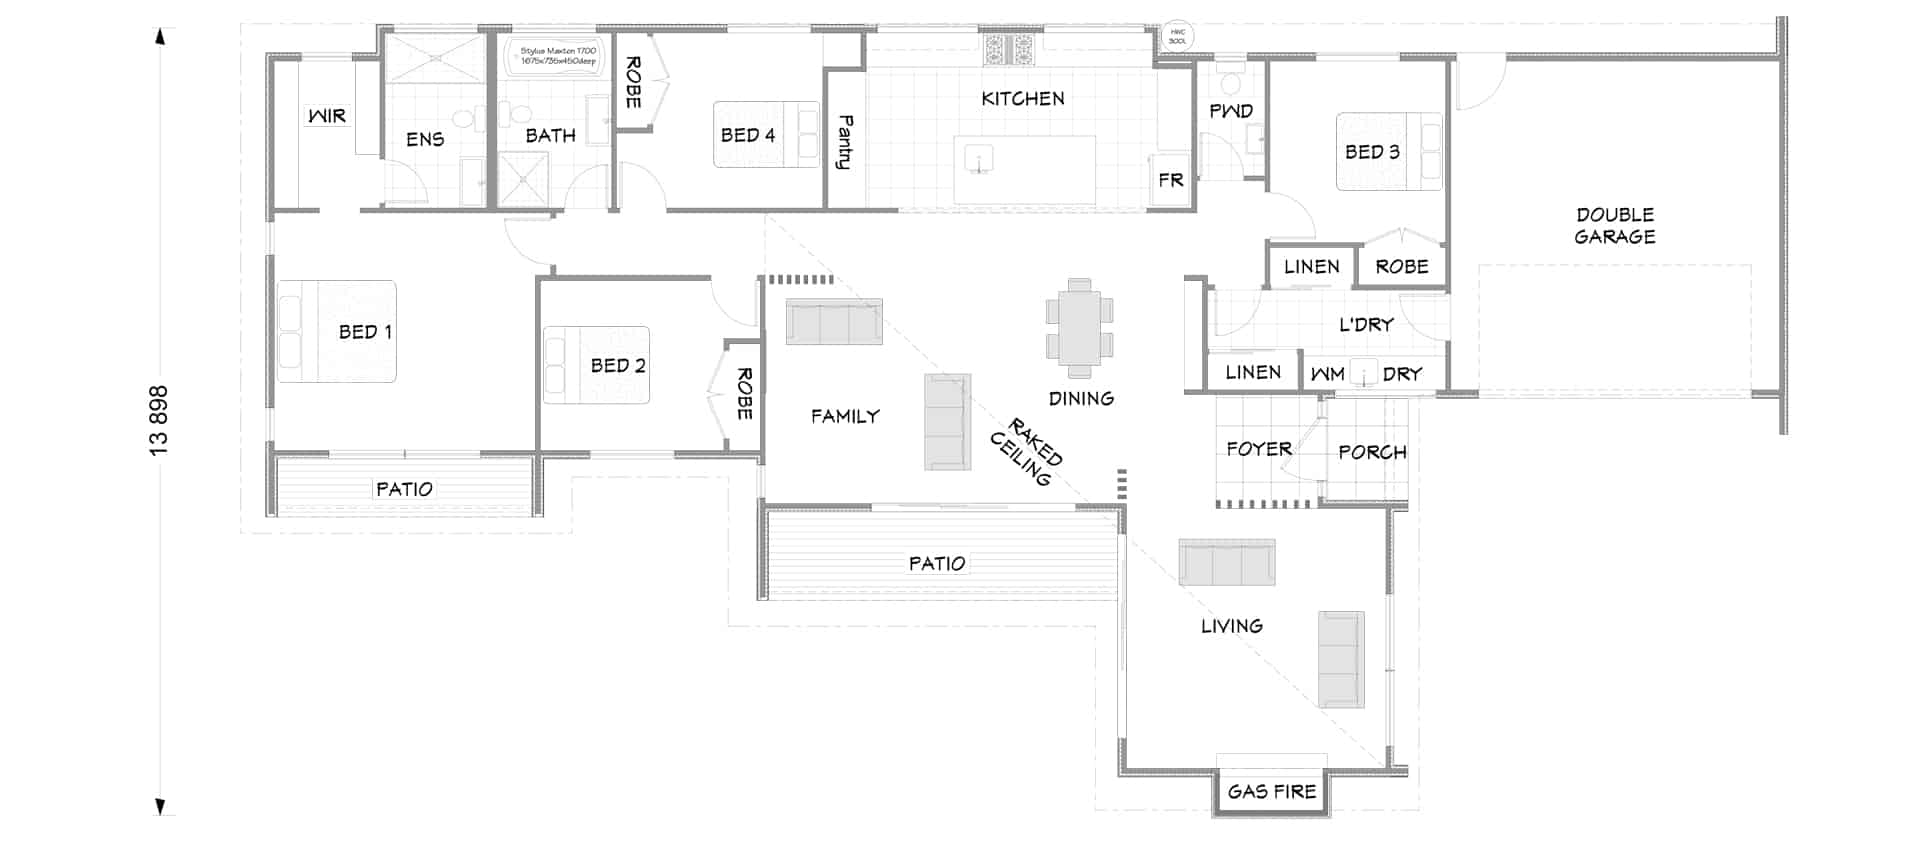 House Plans Guide Useful Information About House Plans House